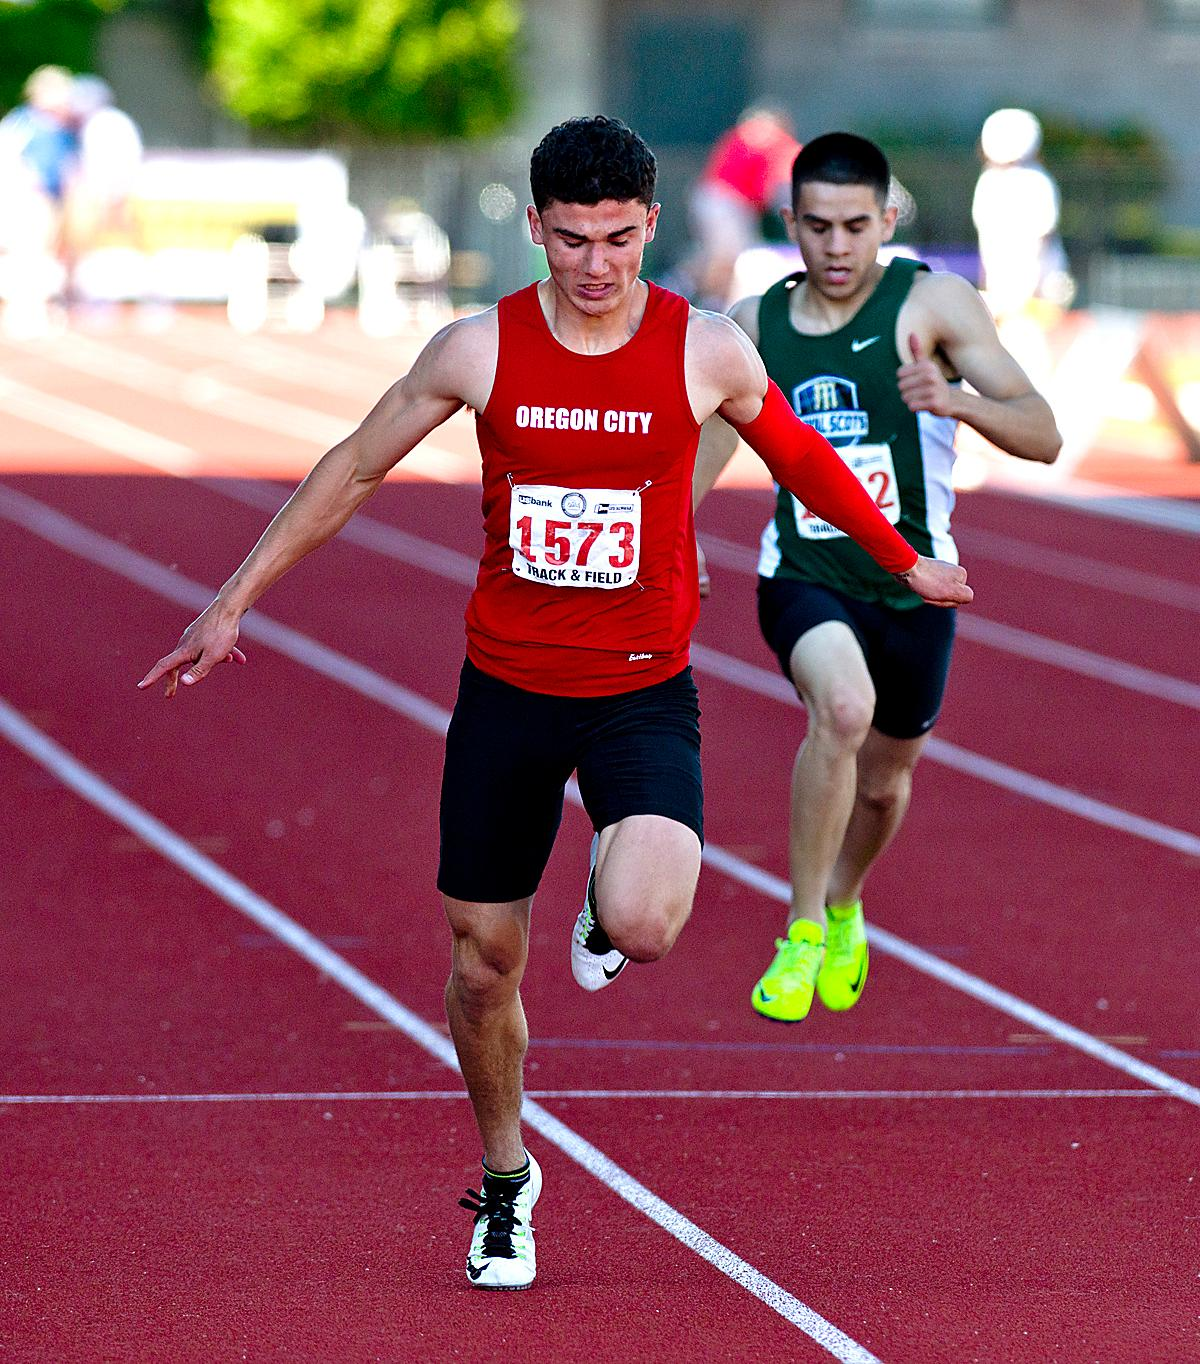 Rieker Daniel from Oregon City wins the 6A Boys 200 meter Dash with a time of 21.49 at the OSAA Championship at Hayward Field this Saturday. Photo by Dan Morrison, Oregon News Lab